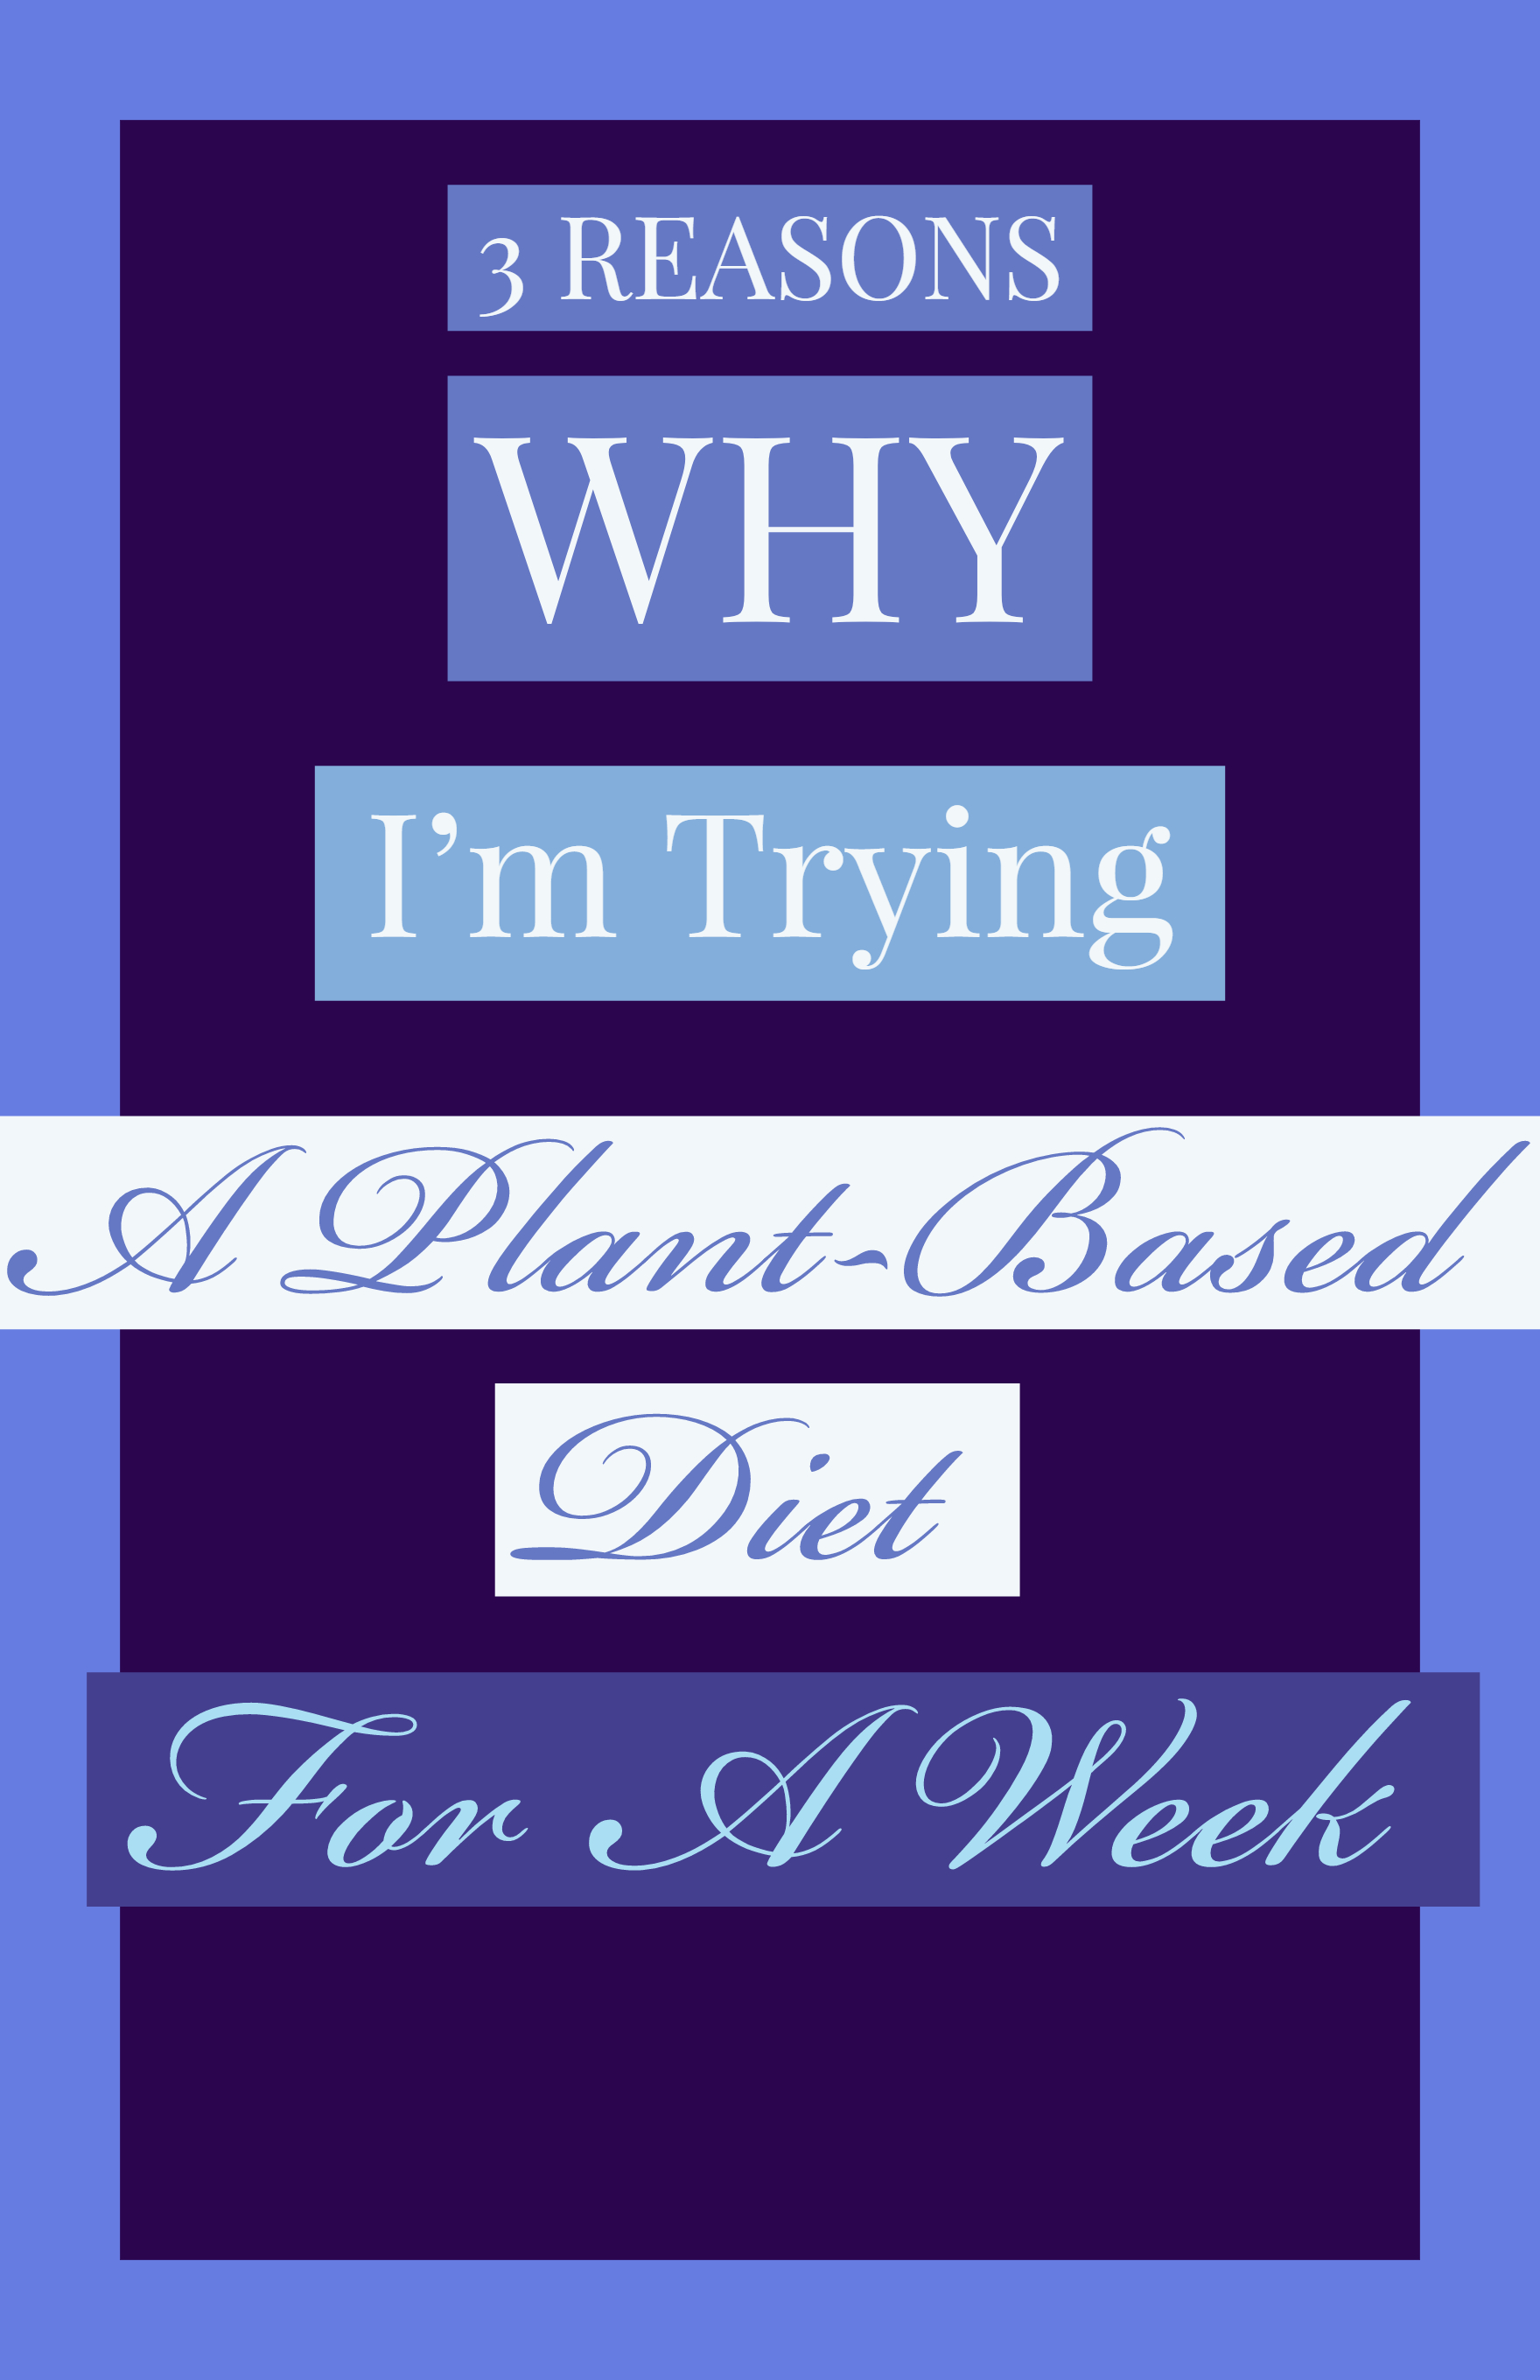 3 Reasons why I'm going plant-based for a week